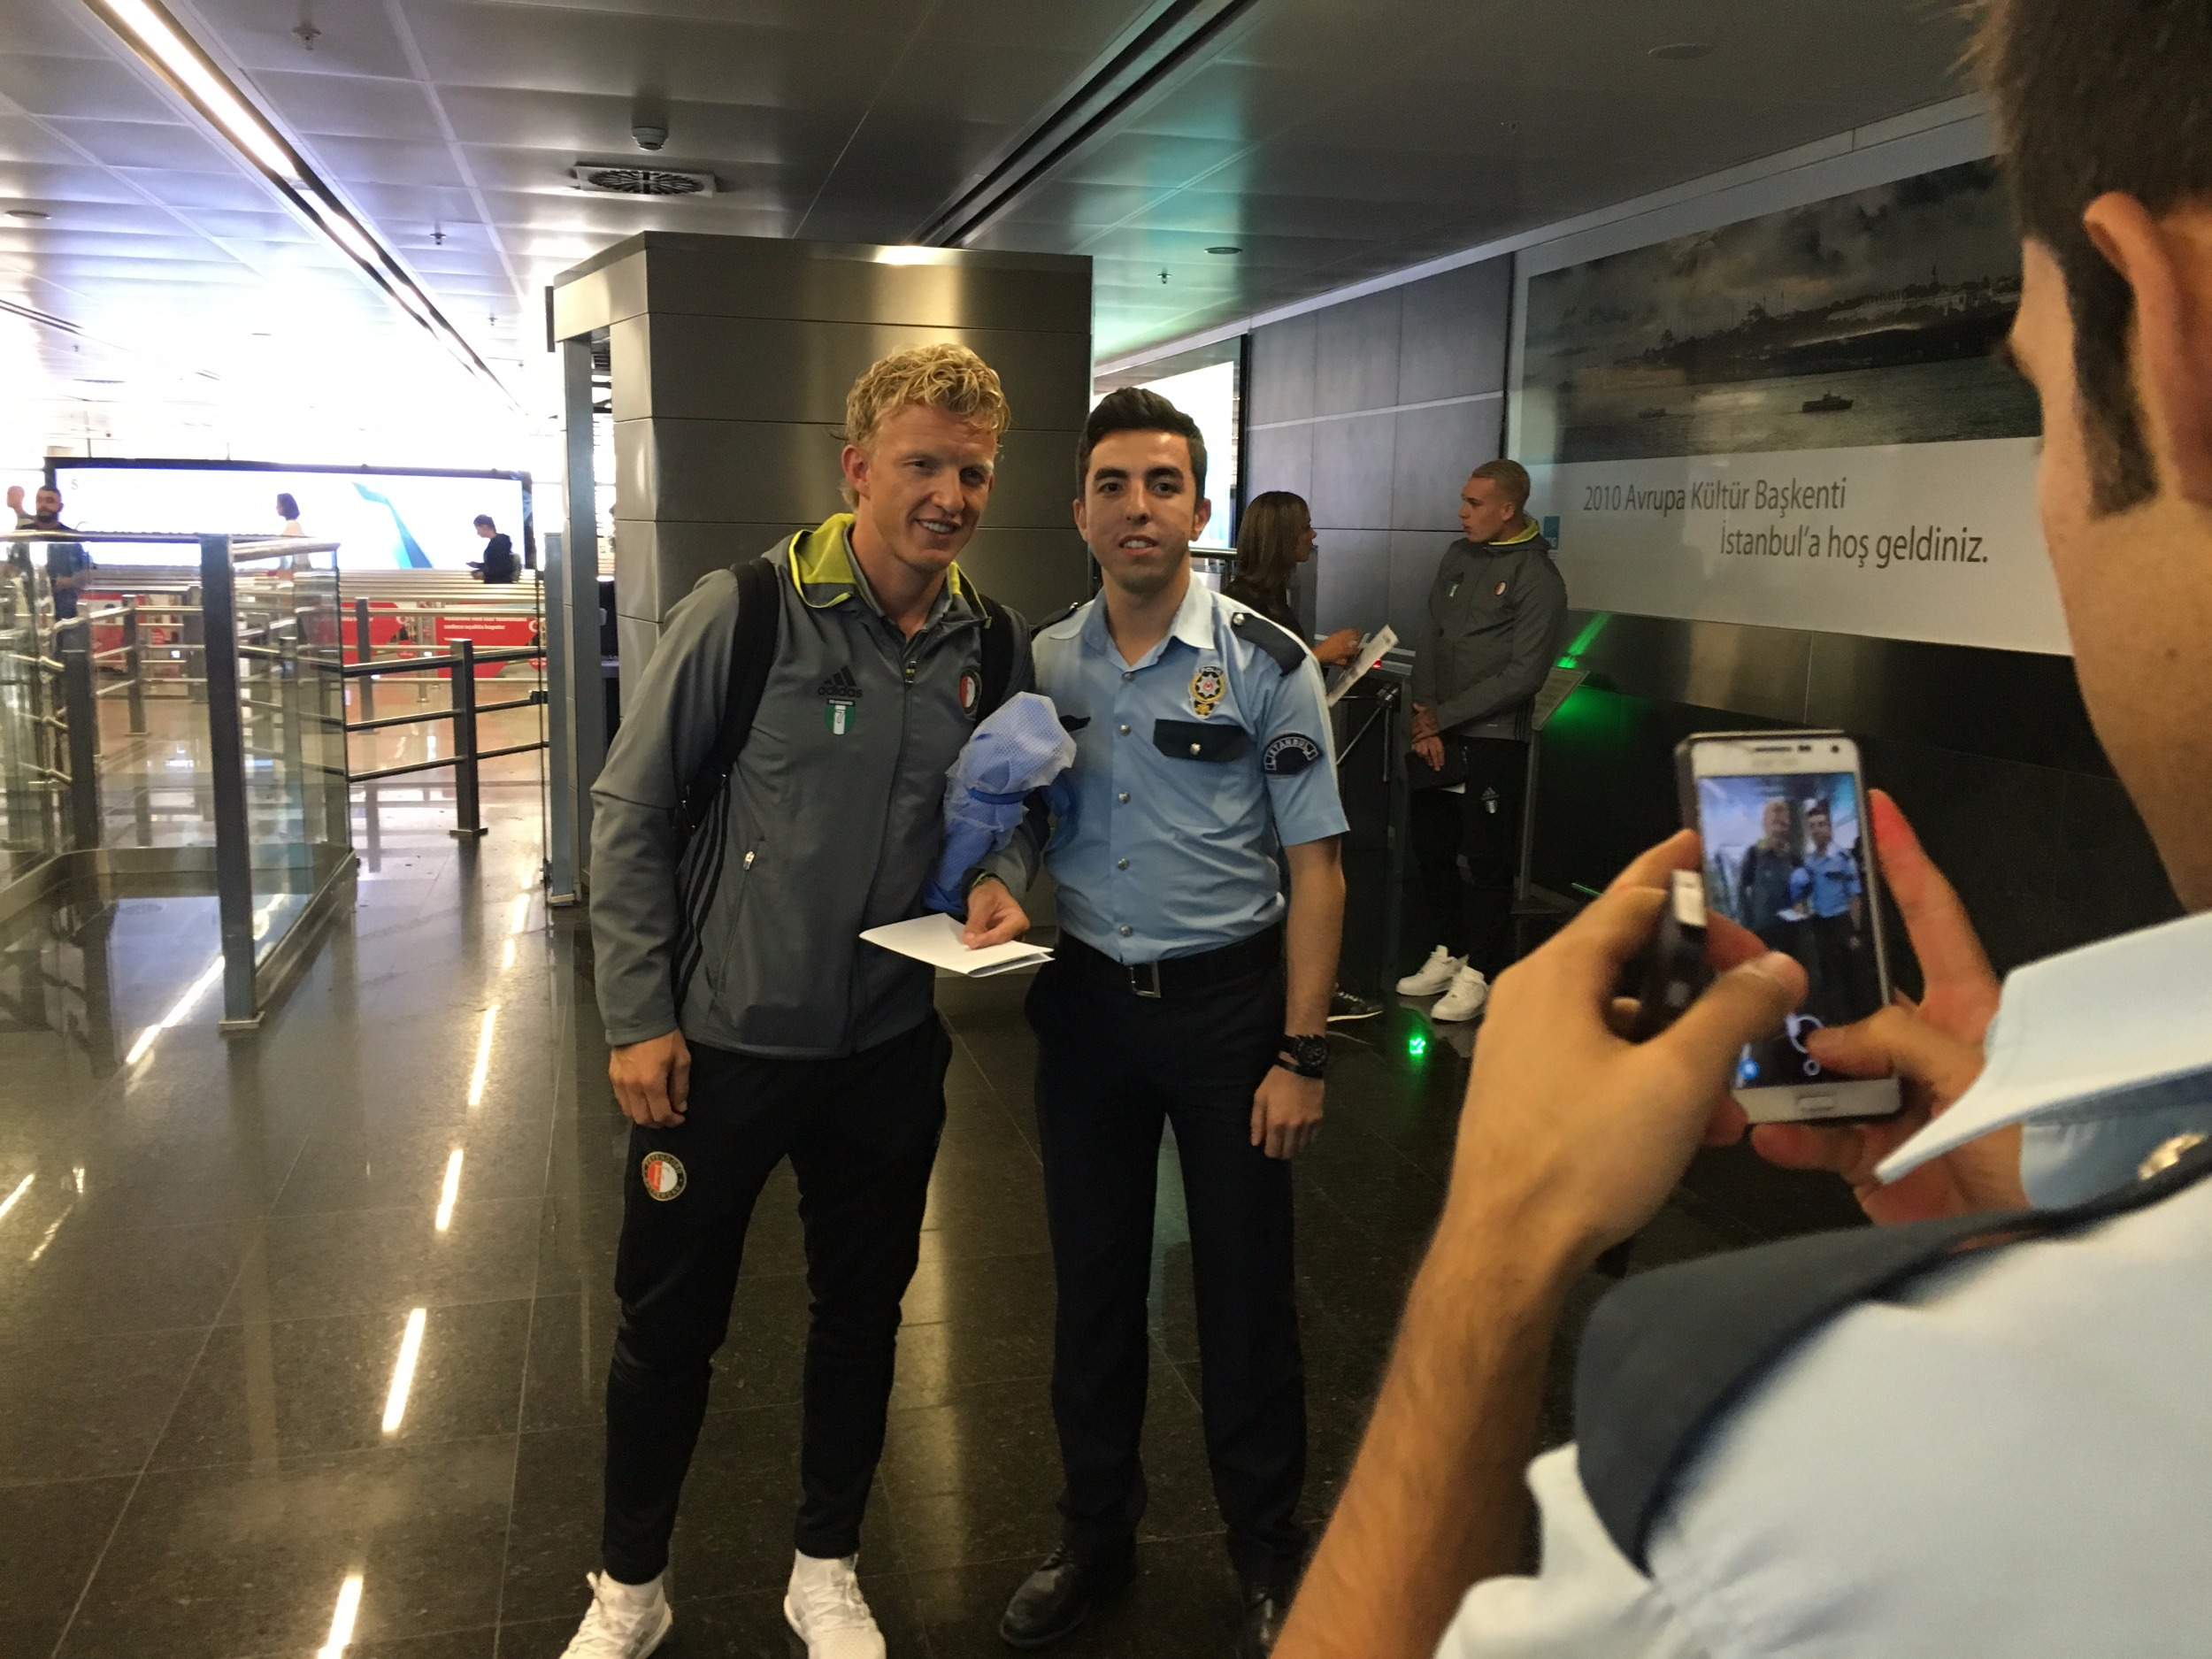 Kuyt%20Istanbul%20airport